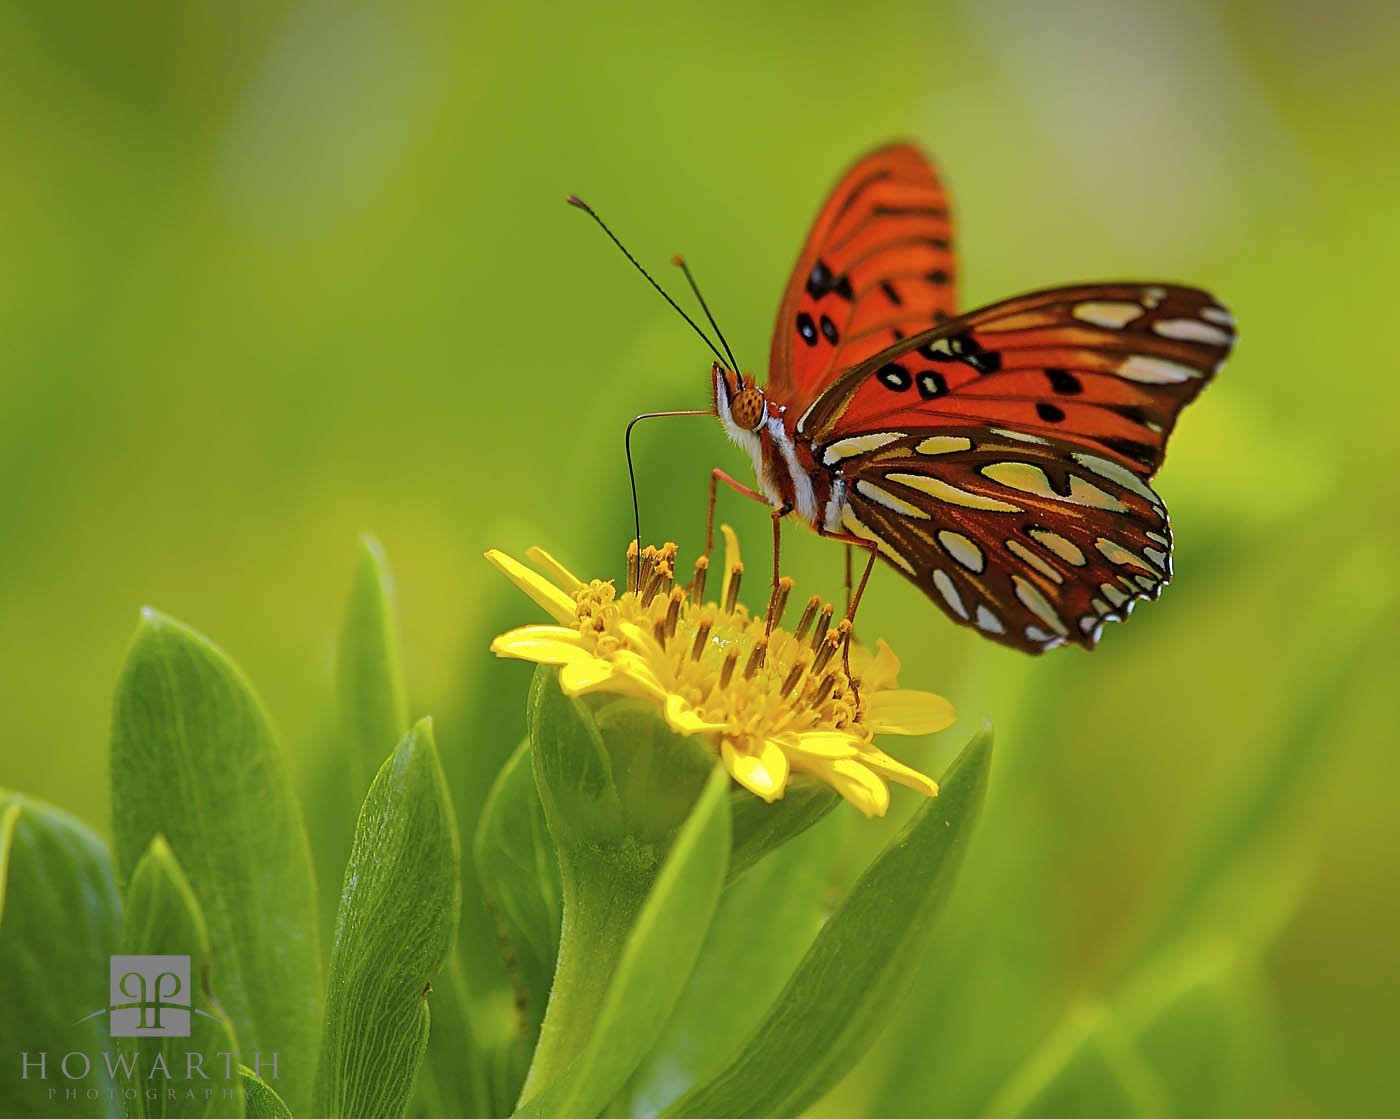 A common butterfly found in the summer months